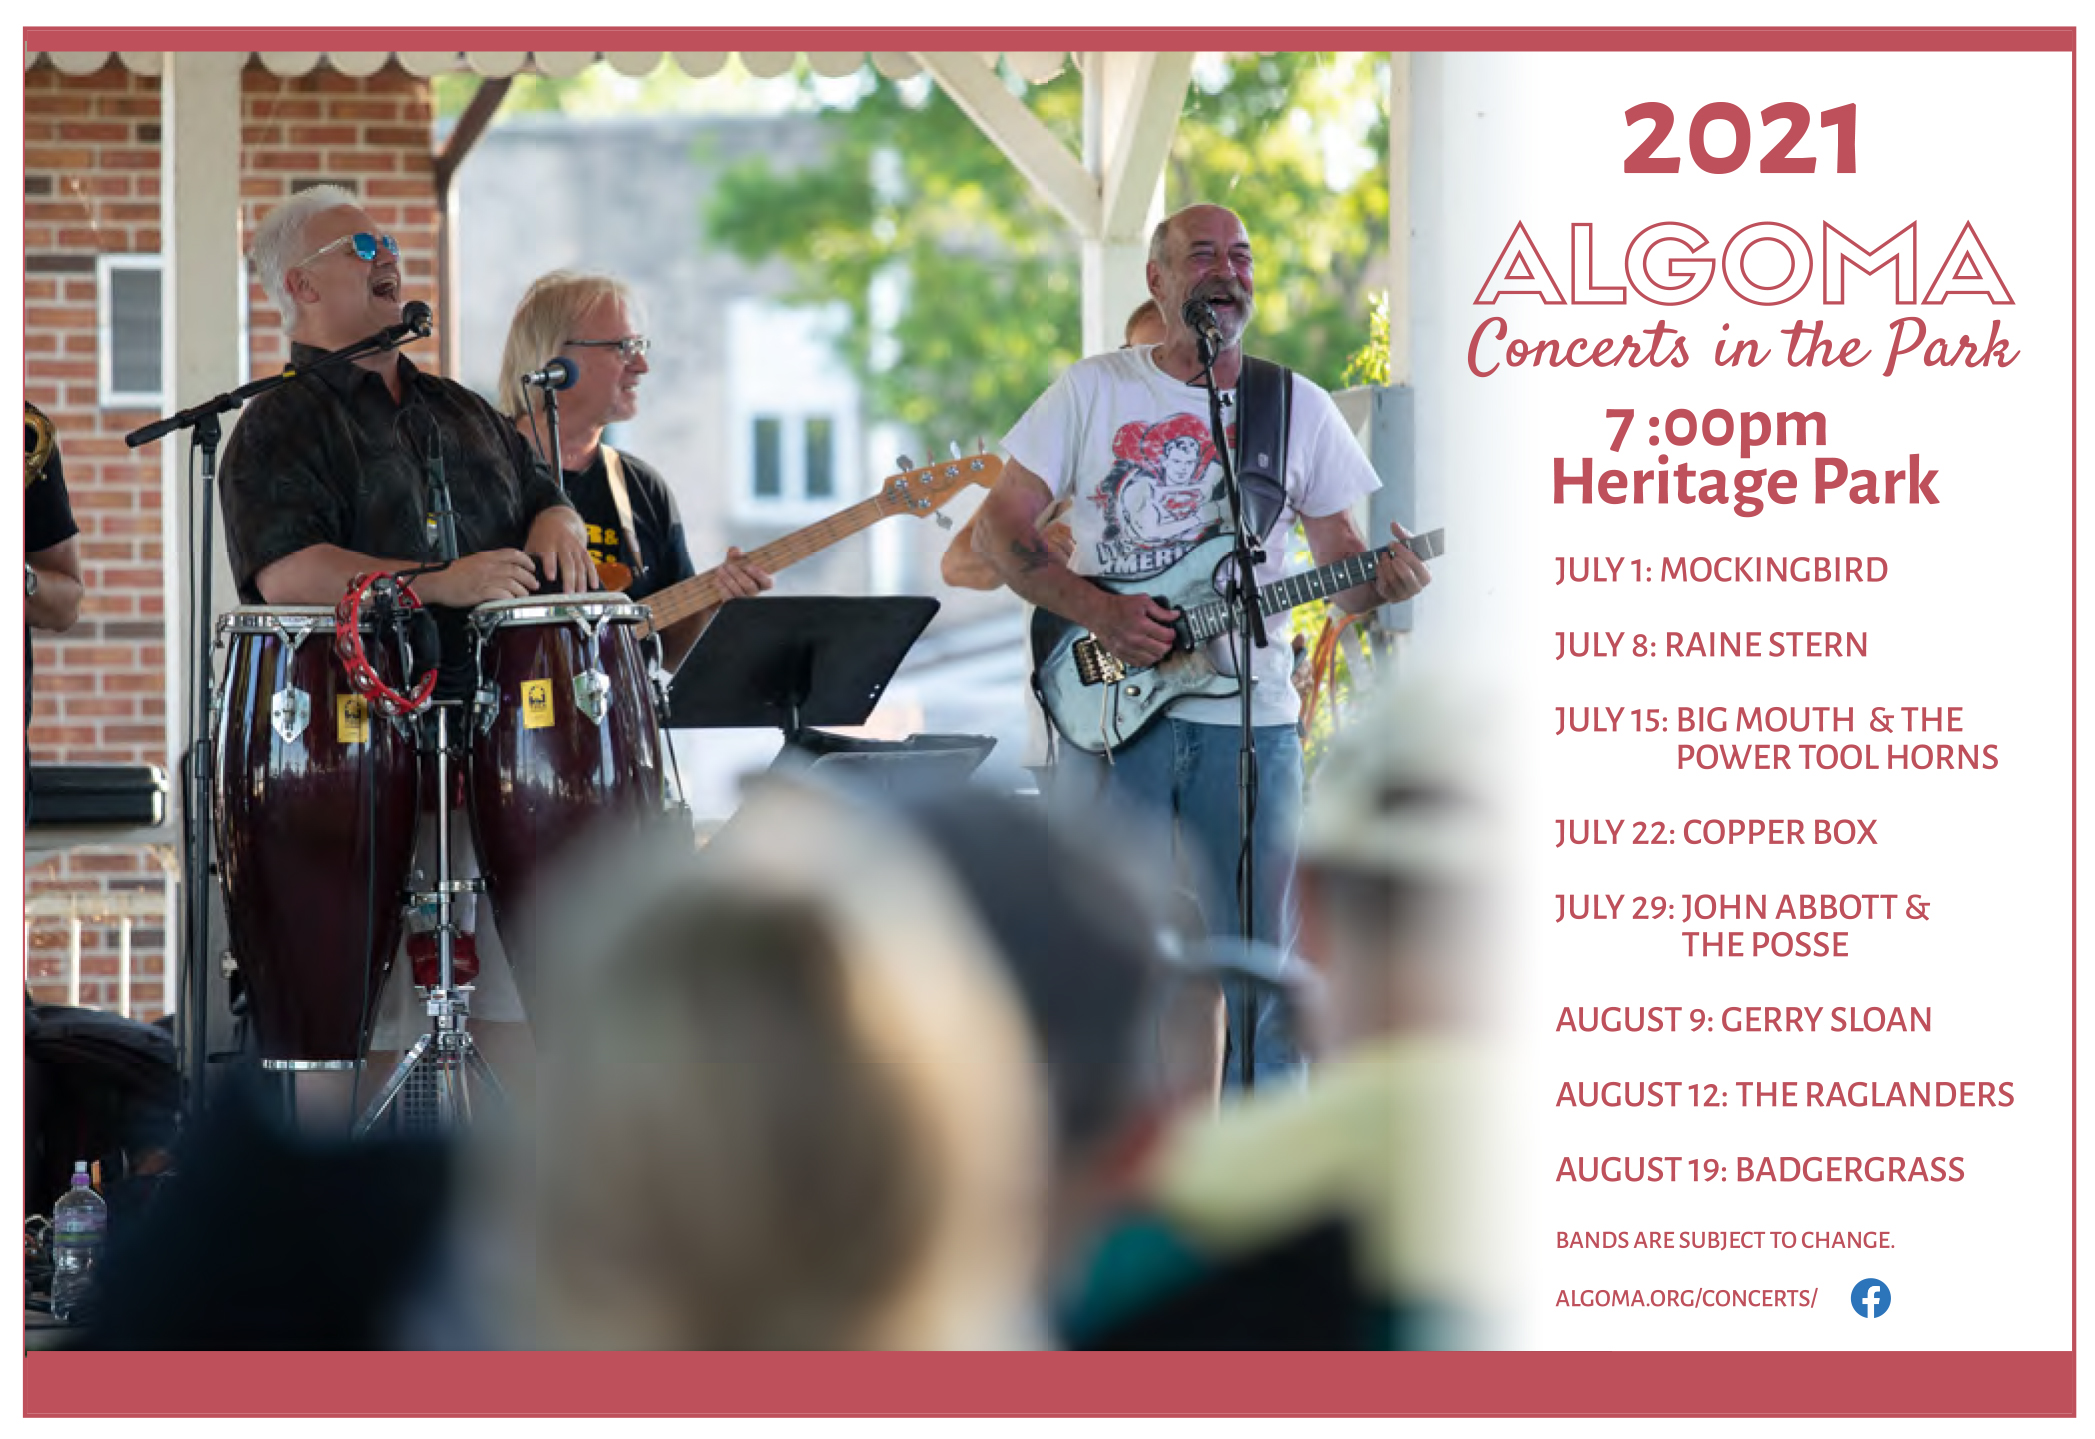 2021 Concerts in the Park Algoma Wisconsin